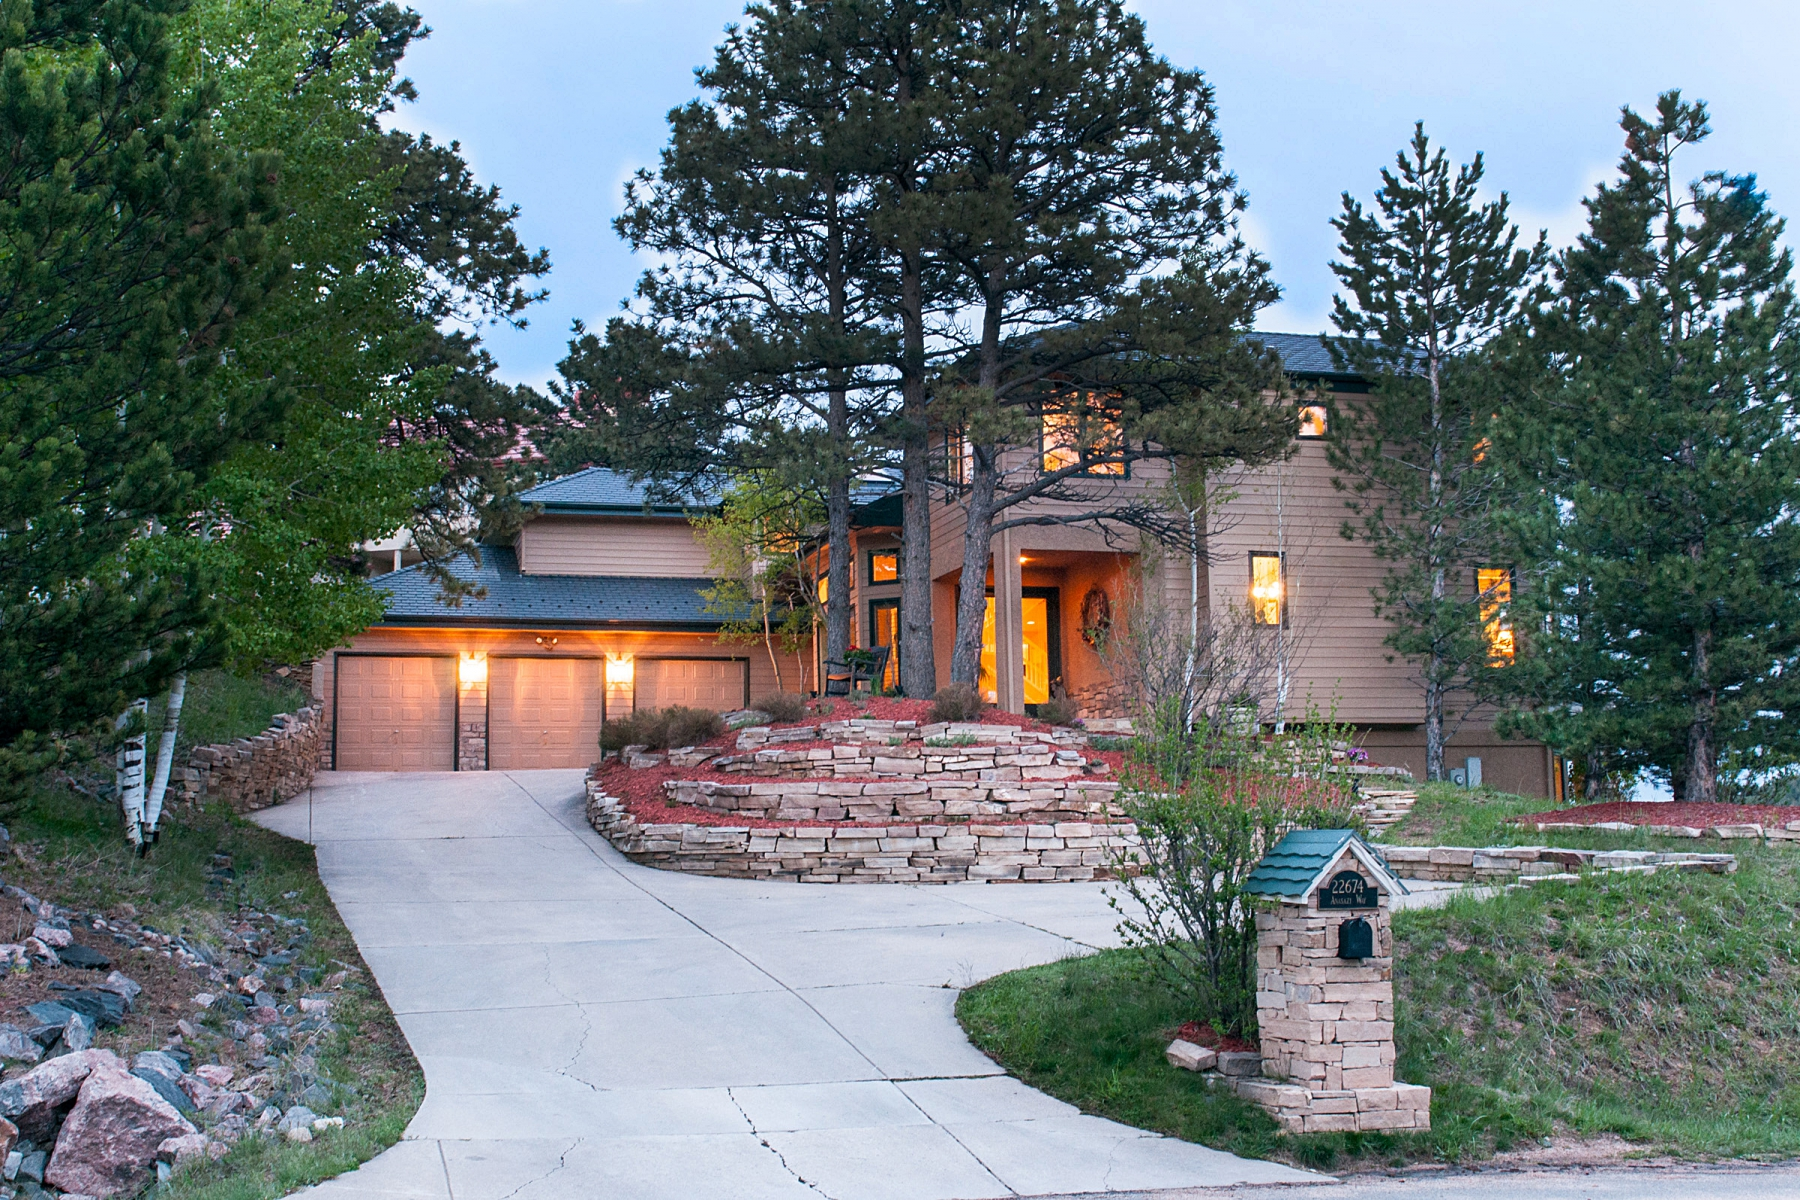 Single Family Home for Sale at Pond Views from Family Home 22674 Anasazi Way Golden, Colorado 80401 United States